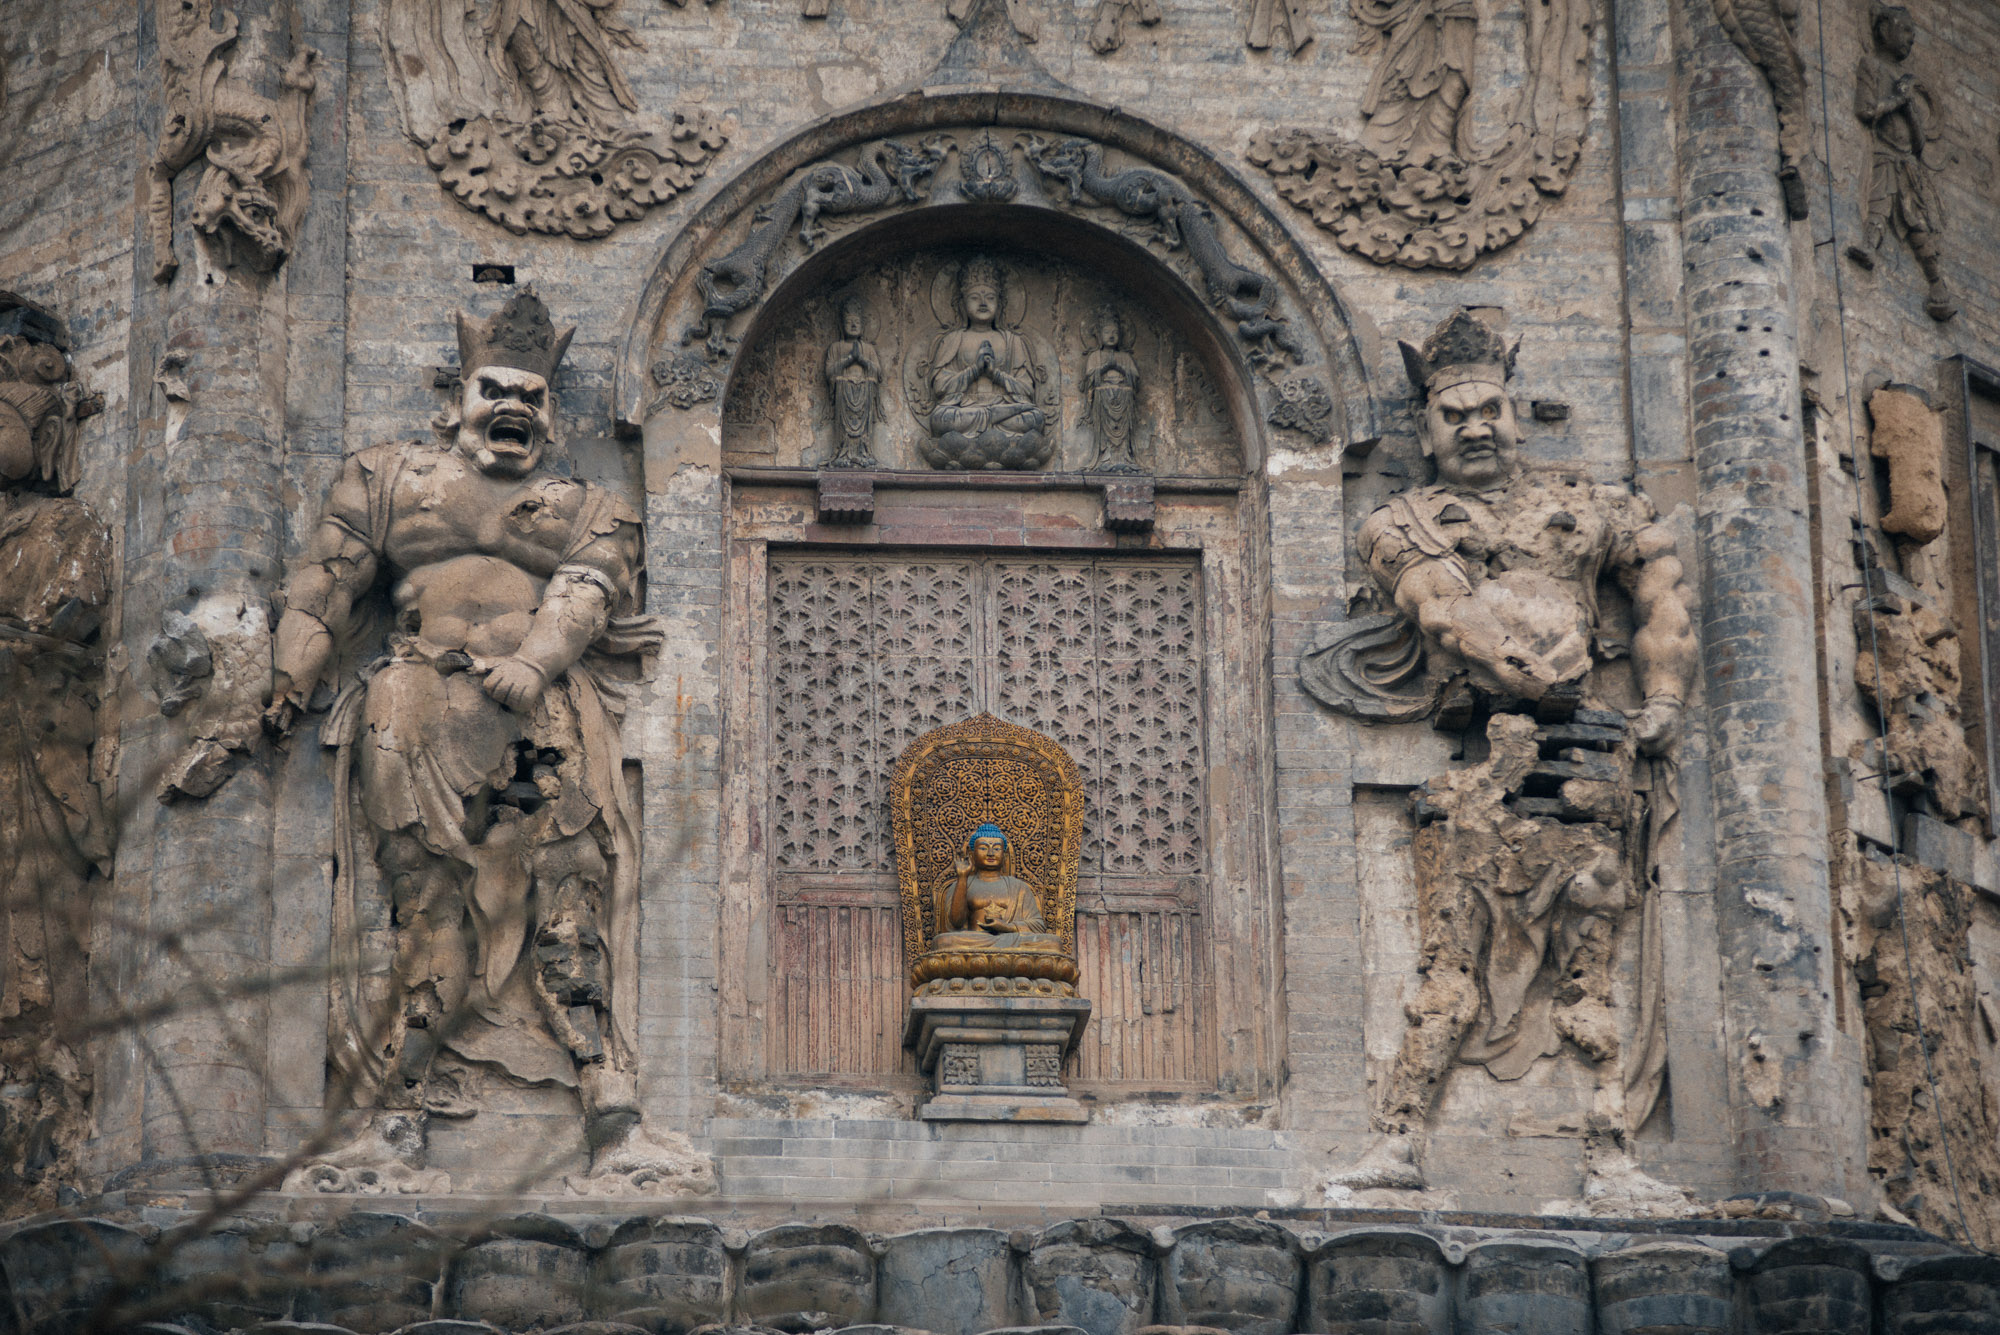 The statues on the sides of the temple, although severely damaged, are believed to be original, having survived the great Tangshan earthquake of 1974 and the Cultural Revolution, when most relics of this and other temples around China were destroyed.